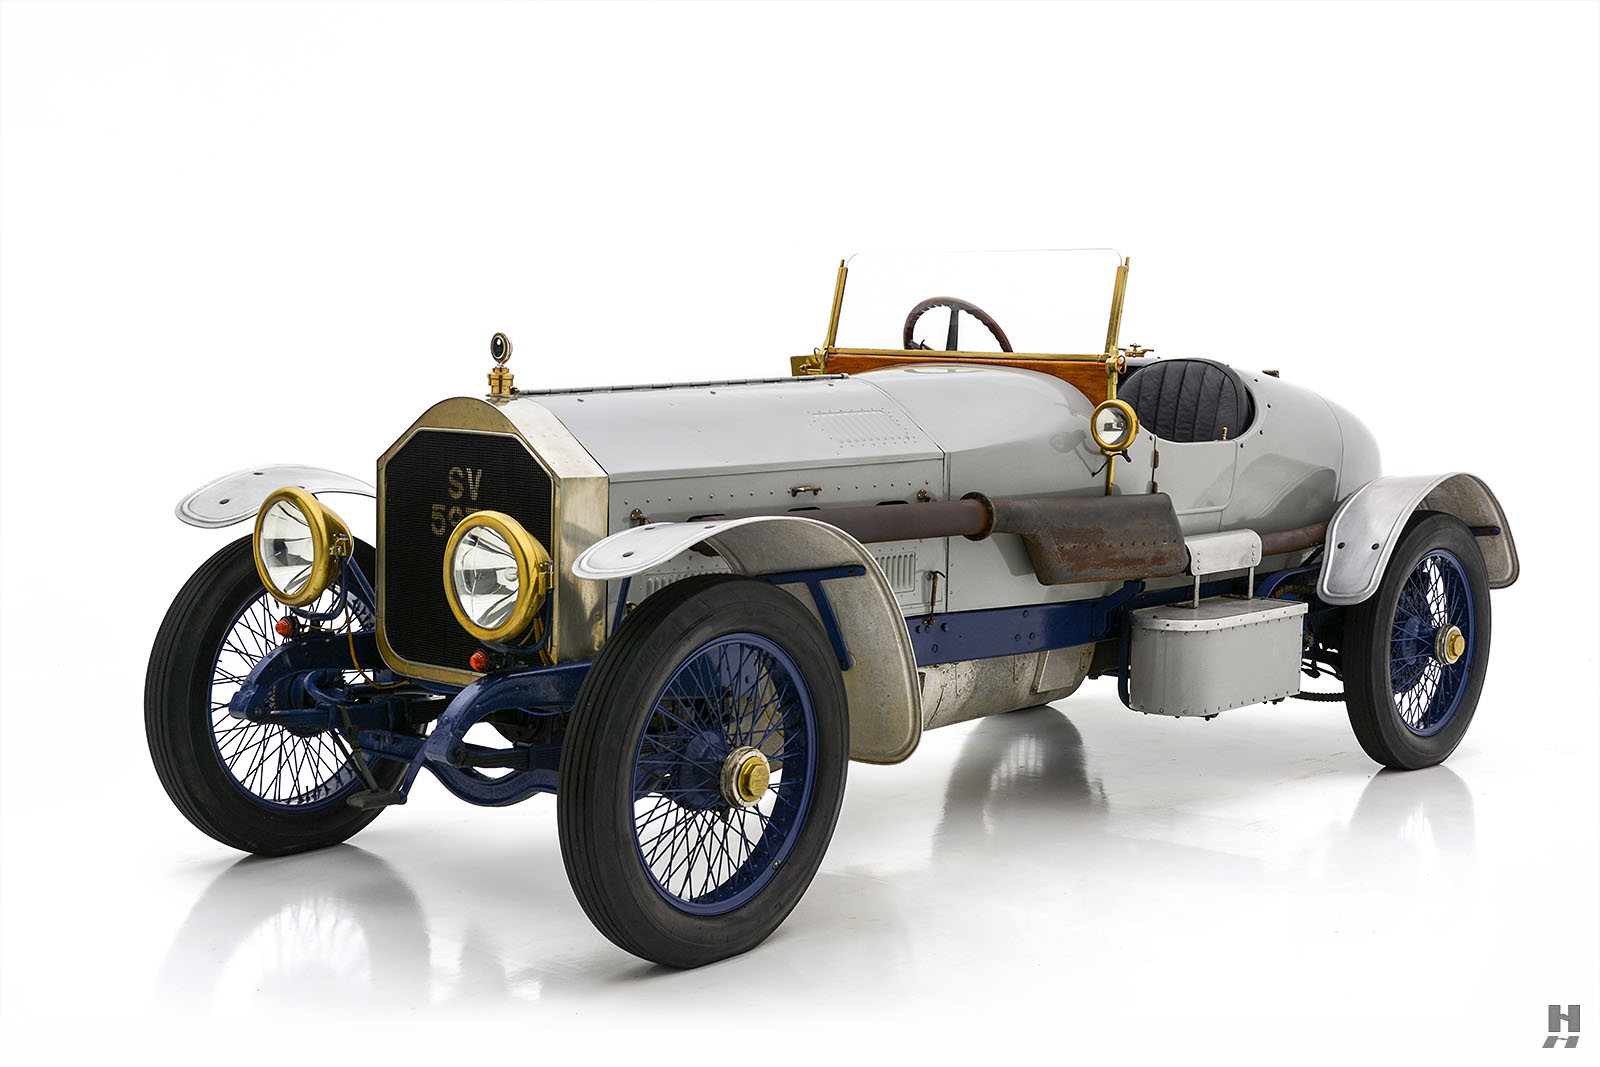 1916 American LaFrance Speedster For Sale at Hyman LTD